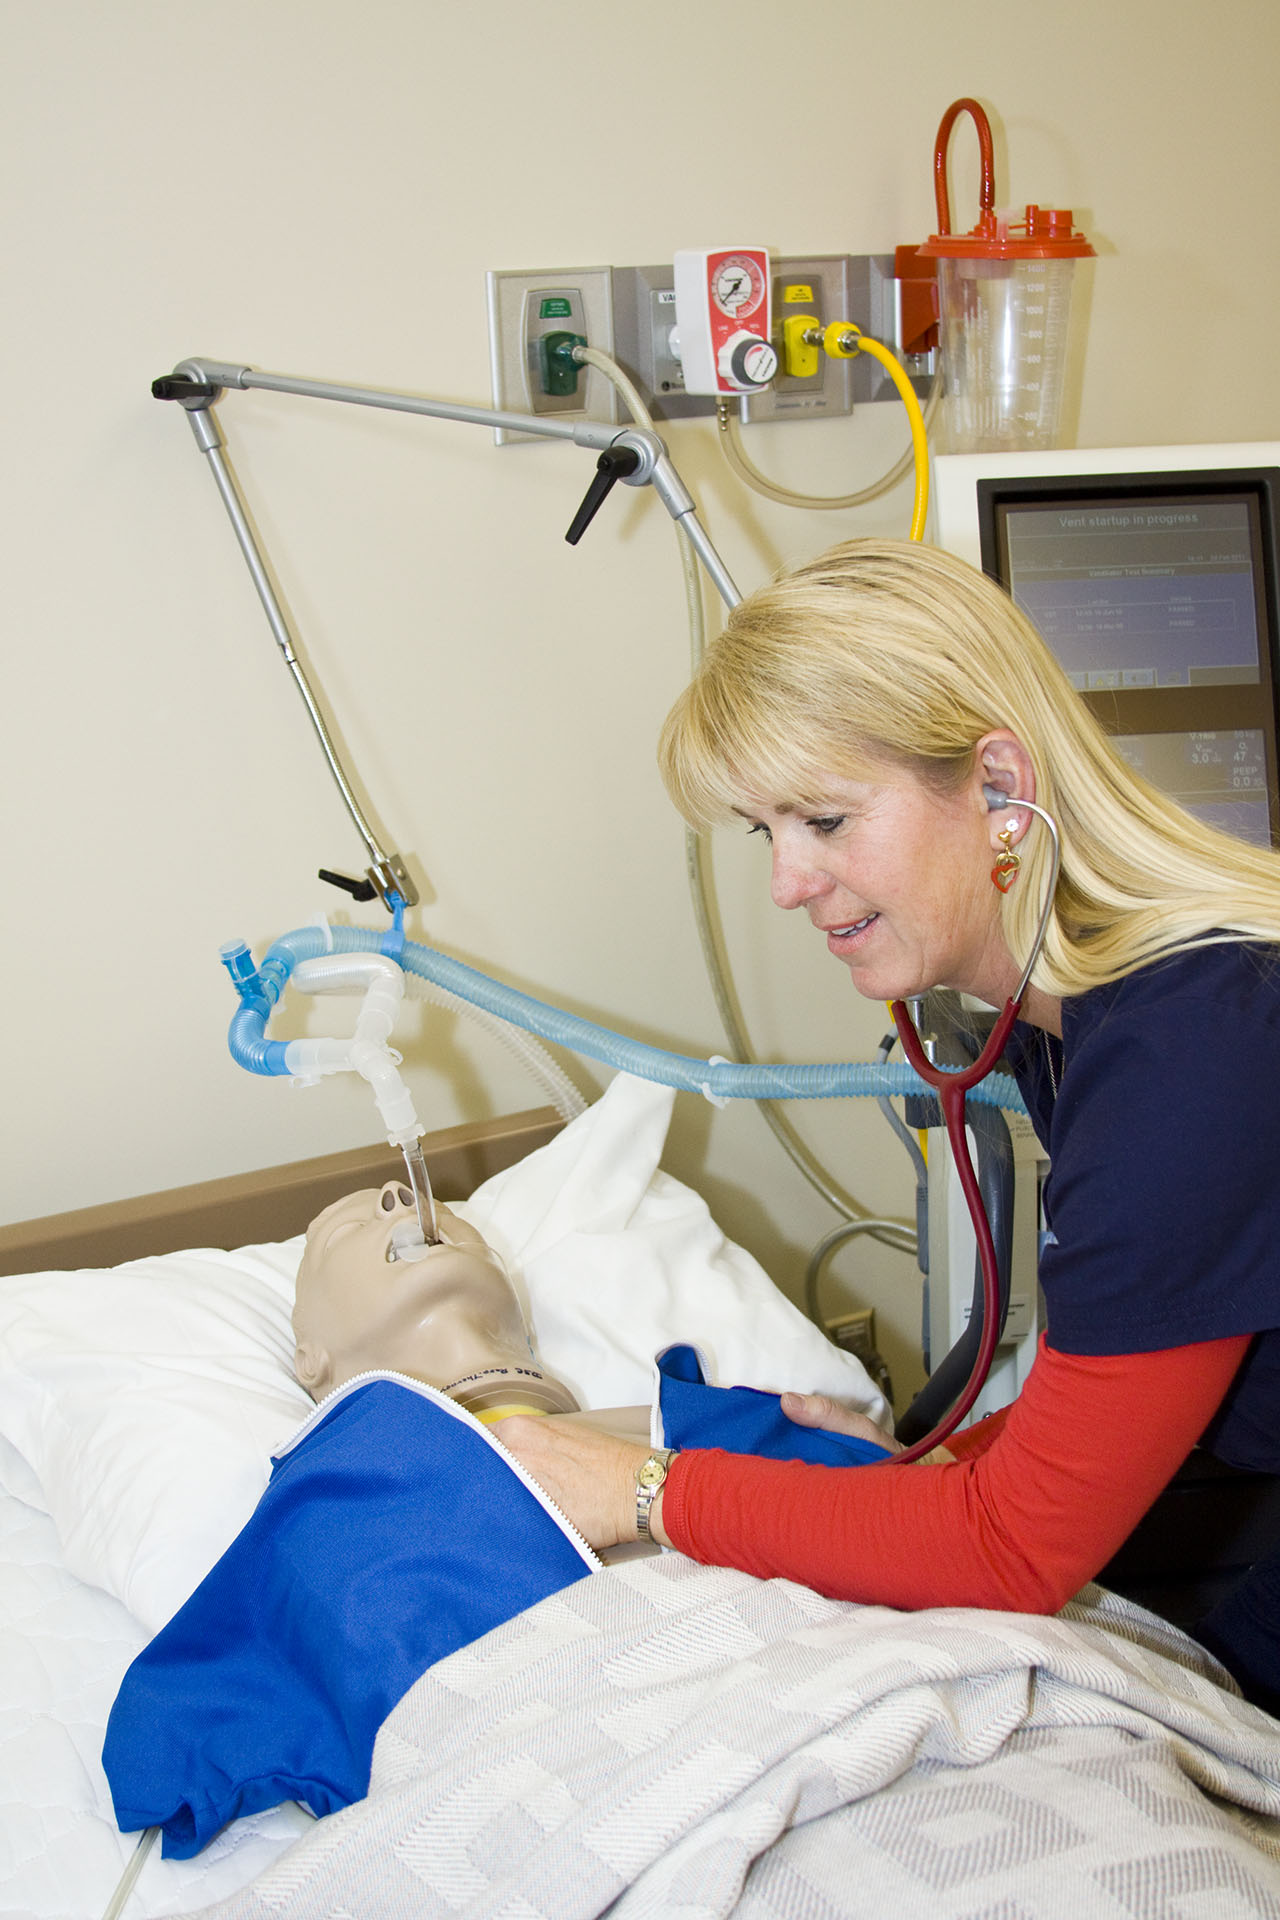 dixie state receives distinguished award for registered respiratory therapist credentialing st